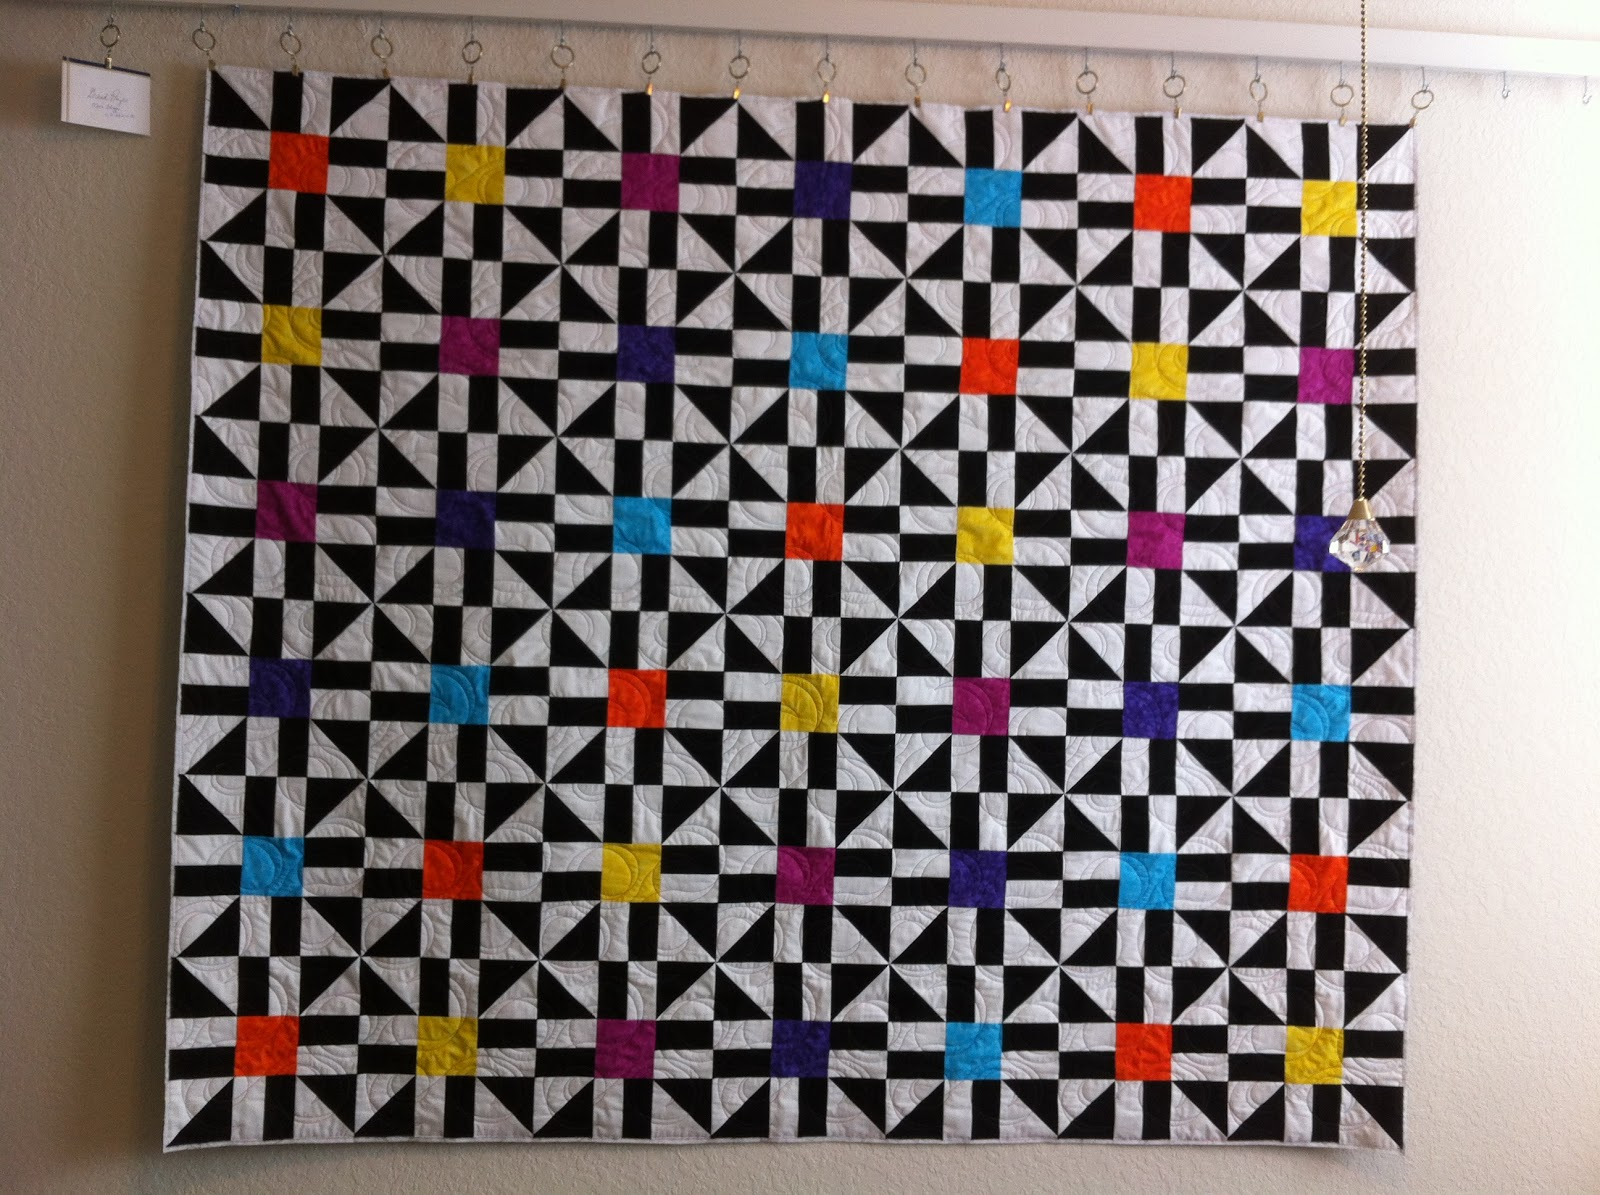 Design Wall Quilts Retractable : Suzy s quilting room design wall monday aka status on